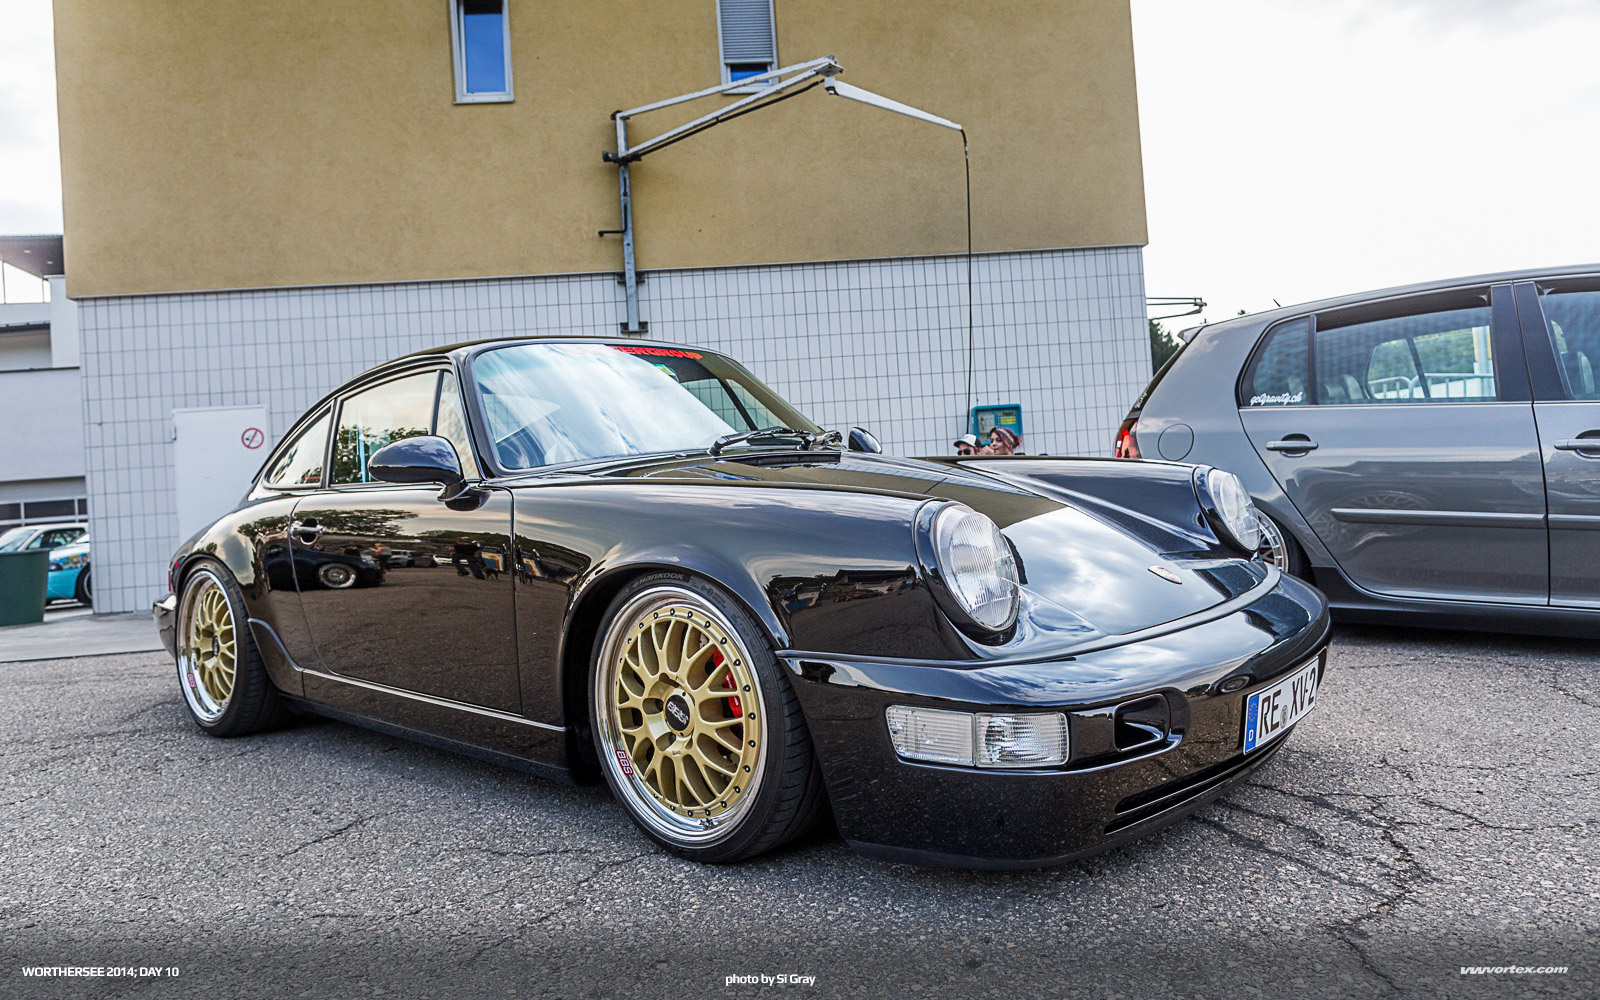 2014-Worthersee-Day-10-Si-Gray-372